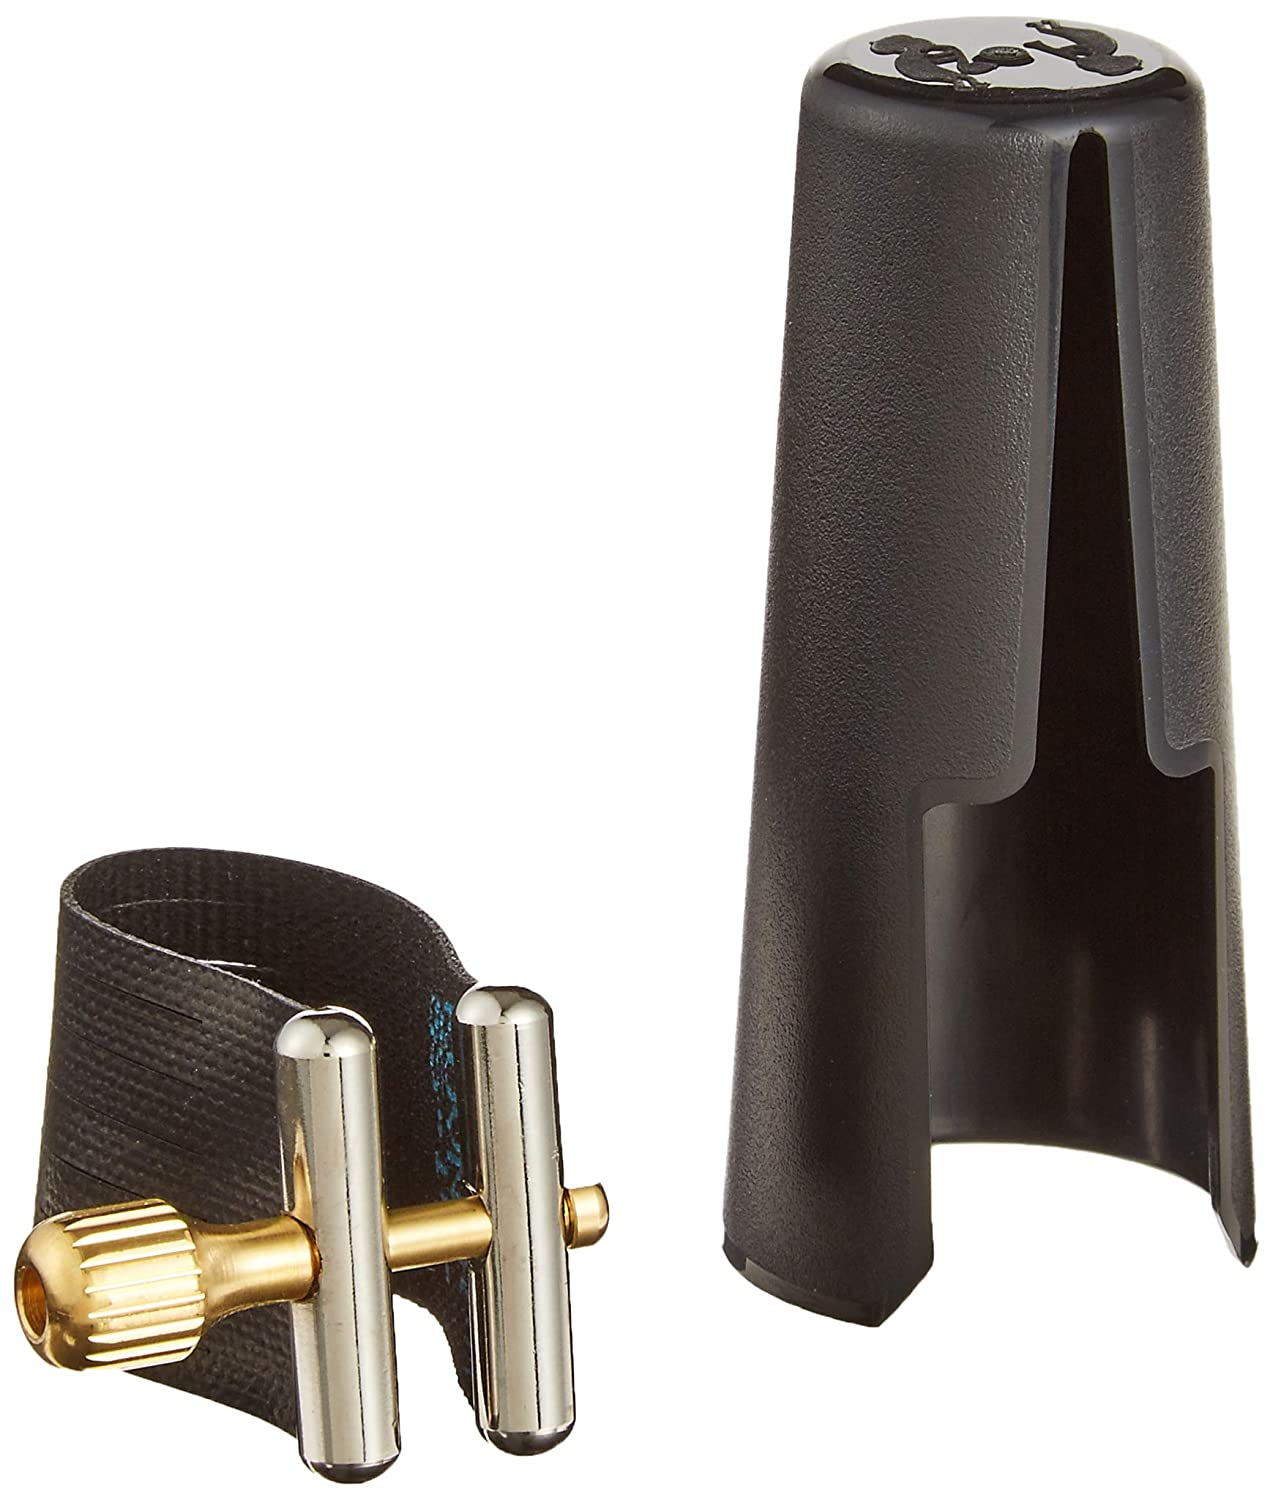 Rovner SS-1RL Alto Saxophone Star Series Ligature for Rubber Mouthpiece - Gold